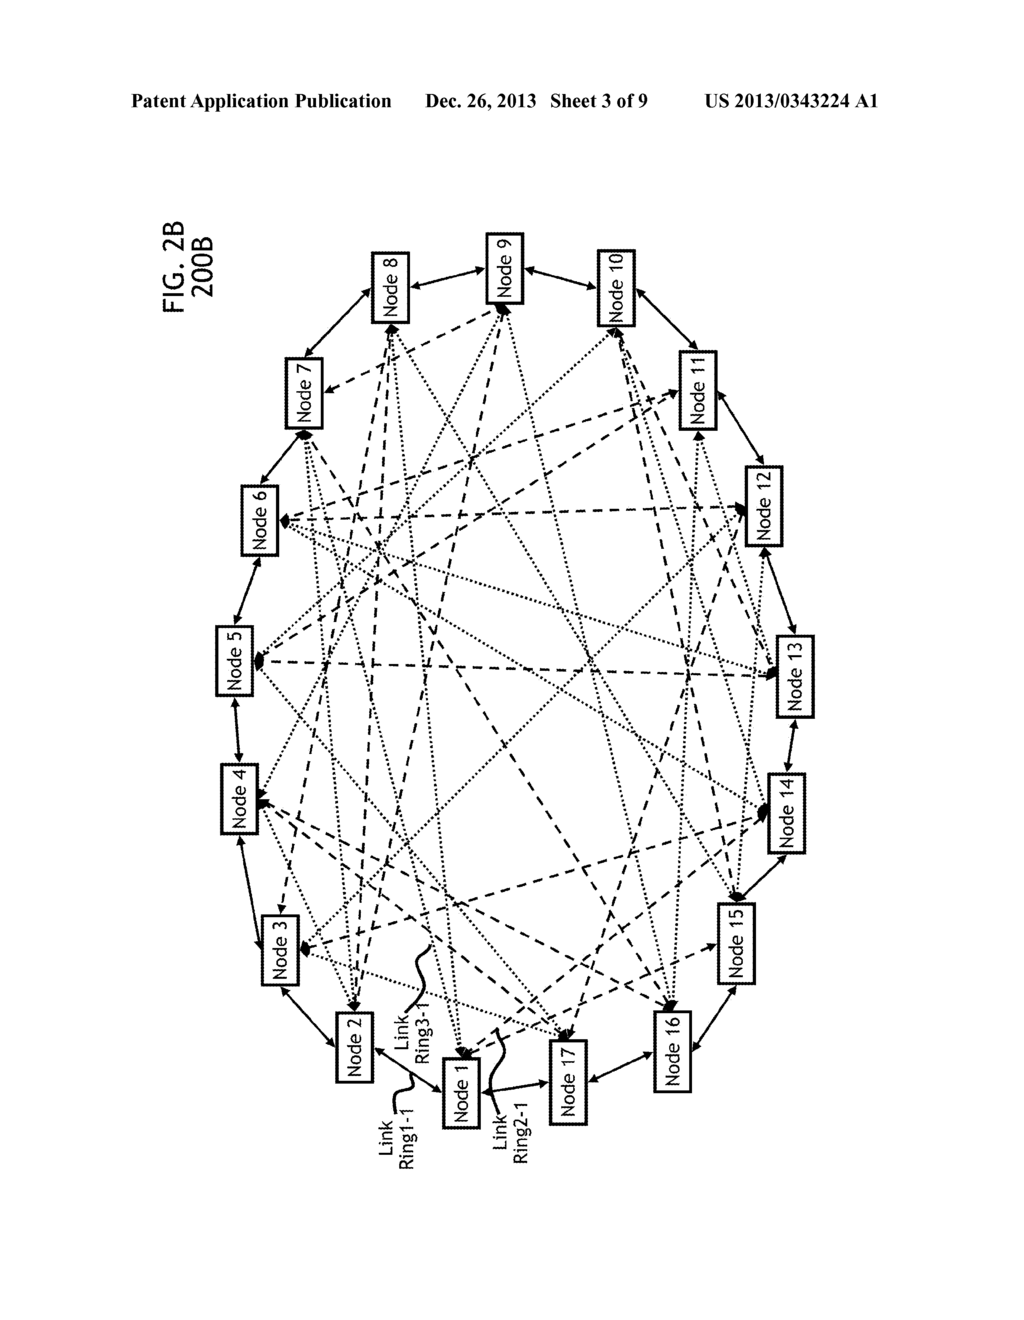 Method and apparatus for providing a non overlapping ring mesh 20130343224 04 20130343224 04 mesh work topology diagram mesh work topology diagram